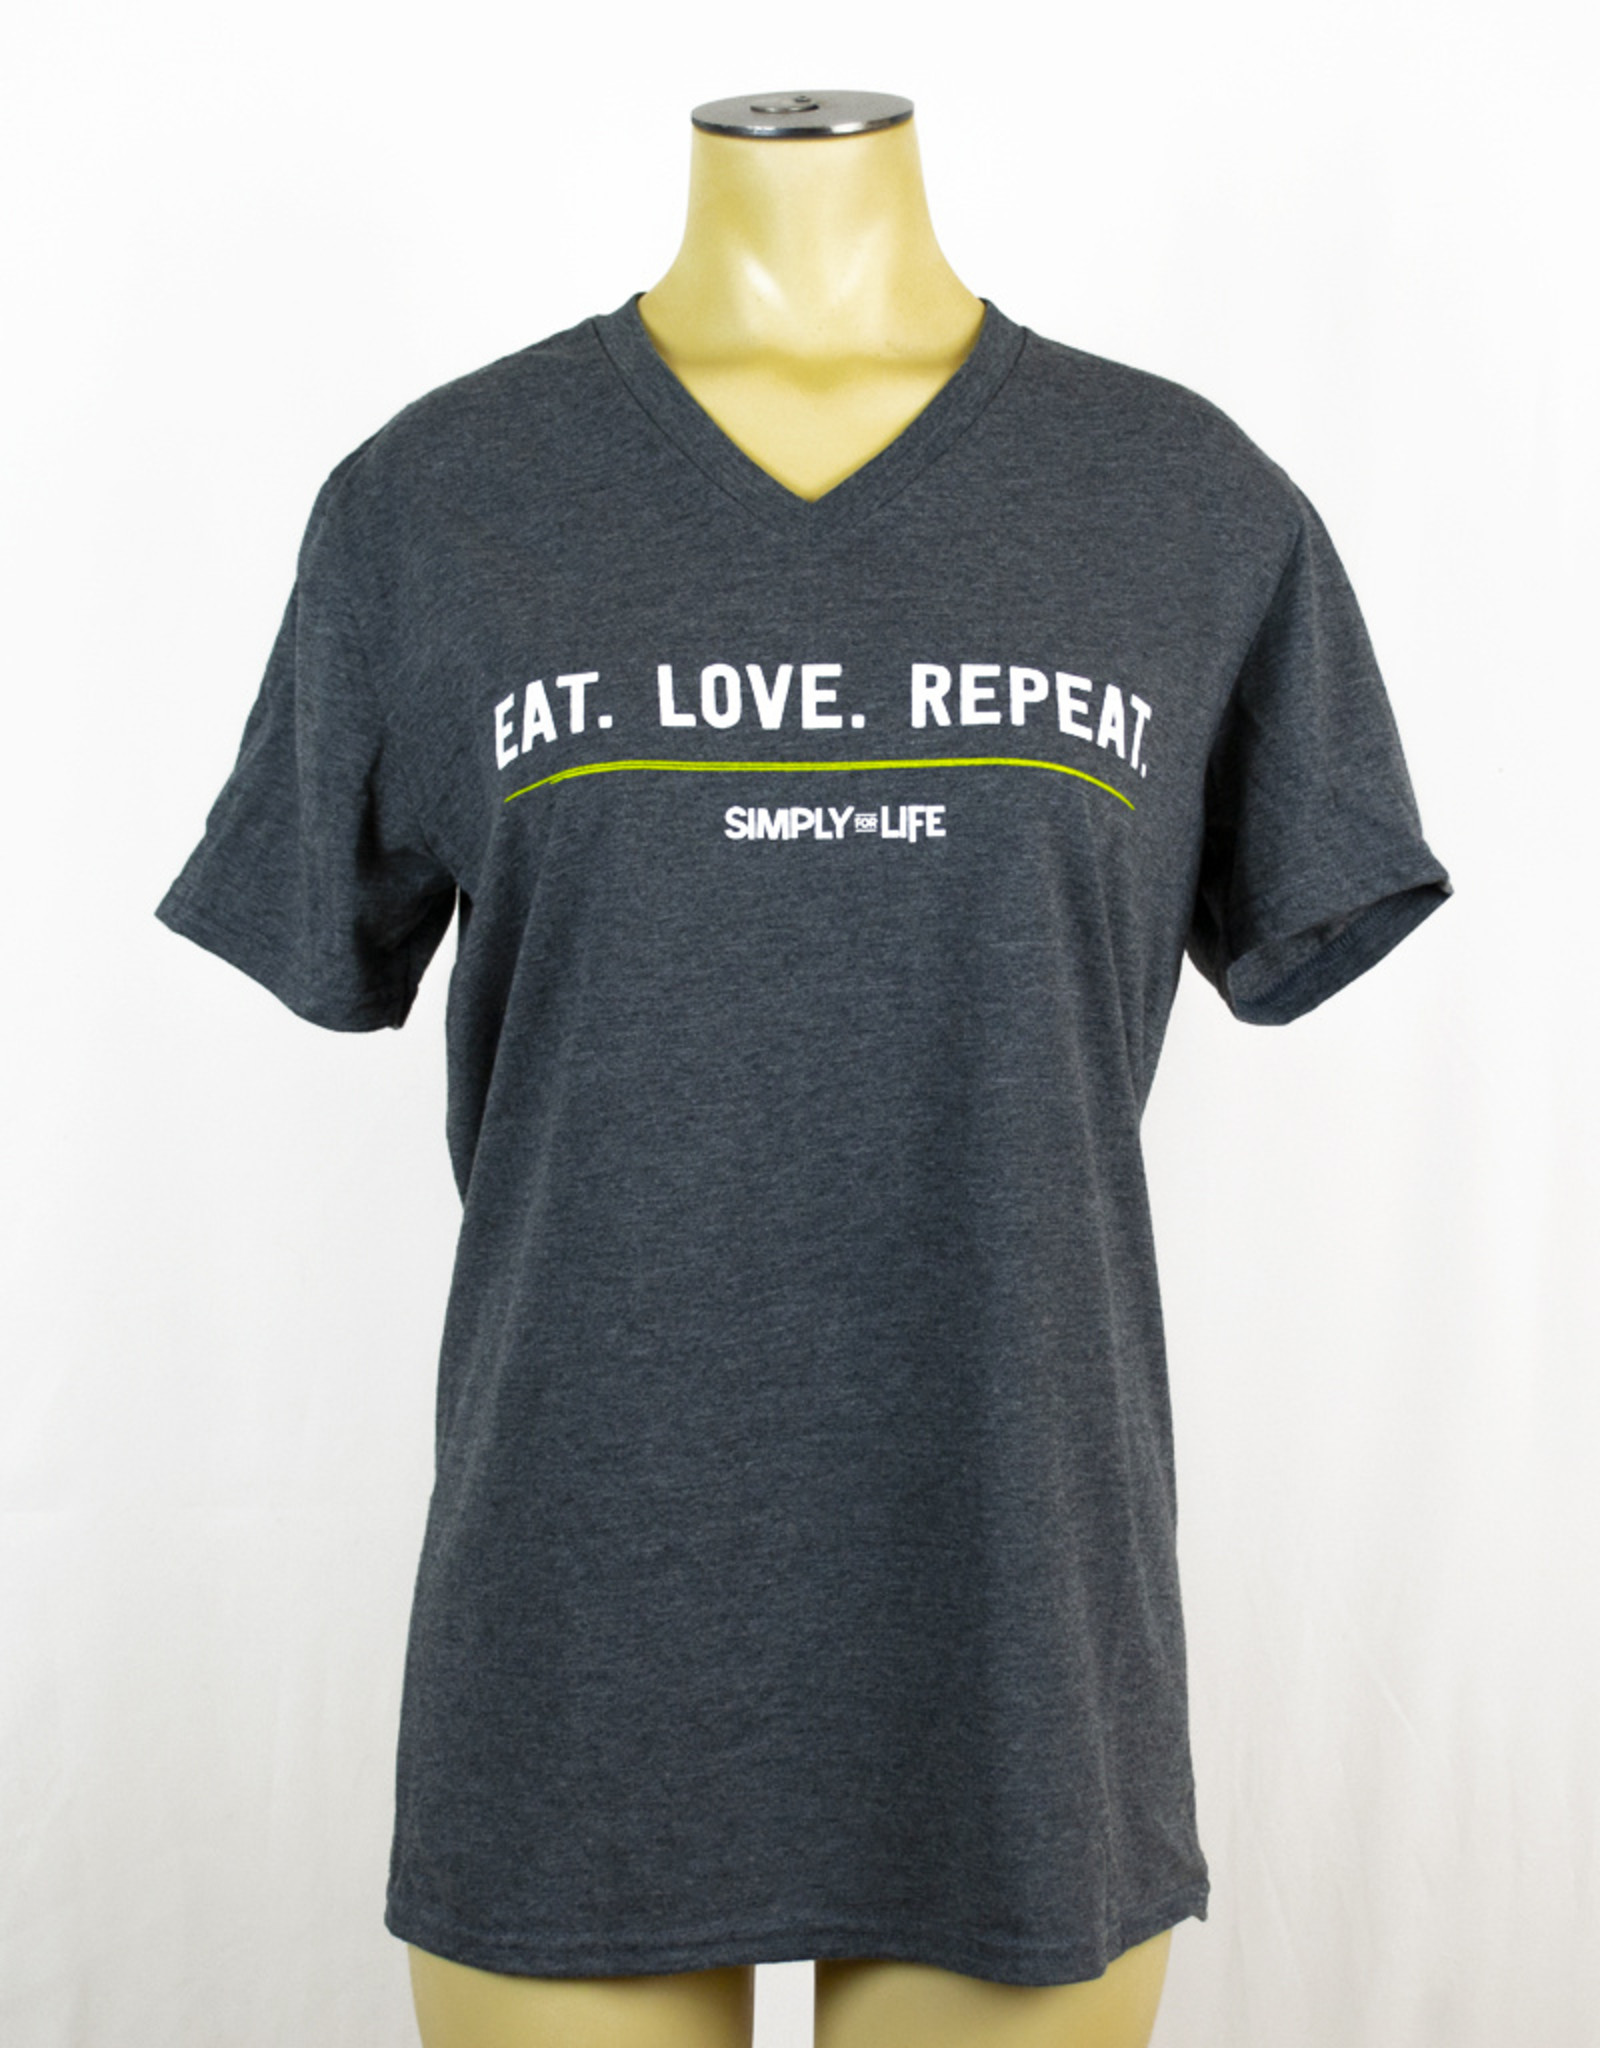 Simply For Life T-Shirt V-neck - Eat Love Repeat